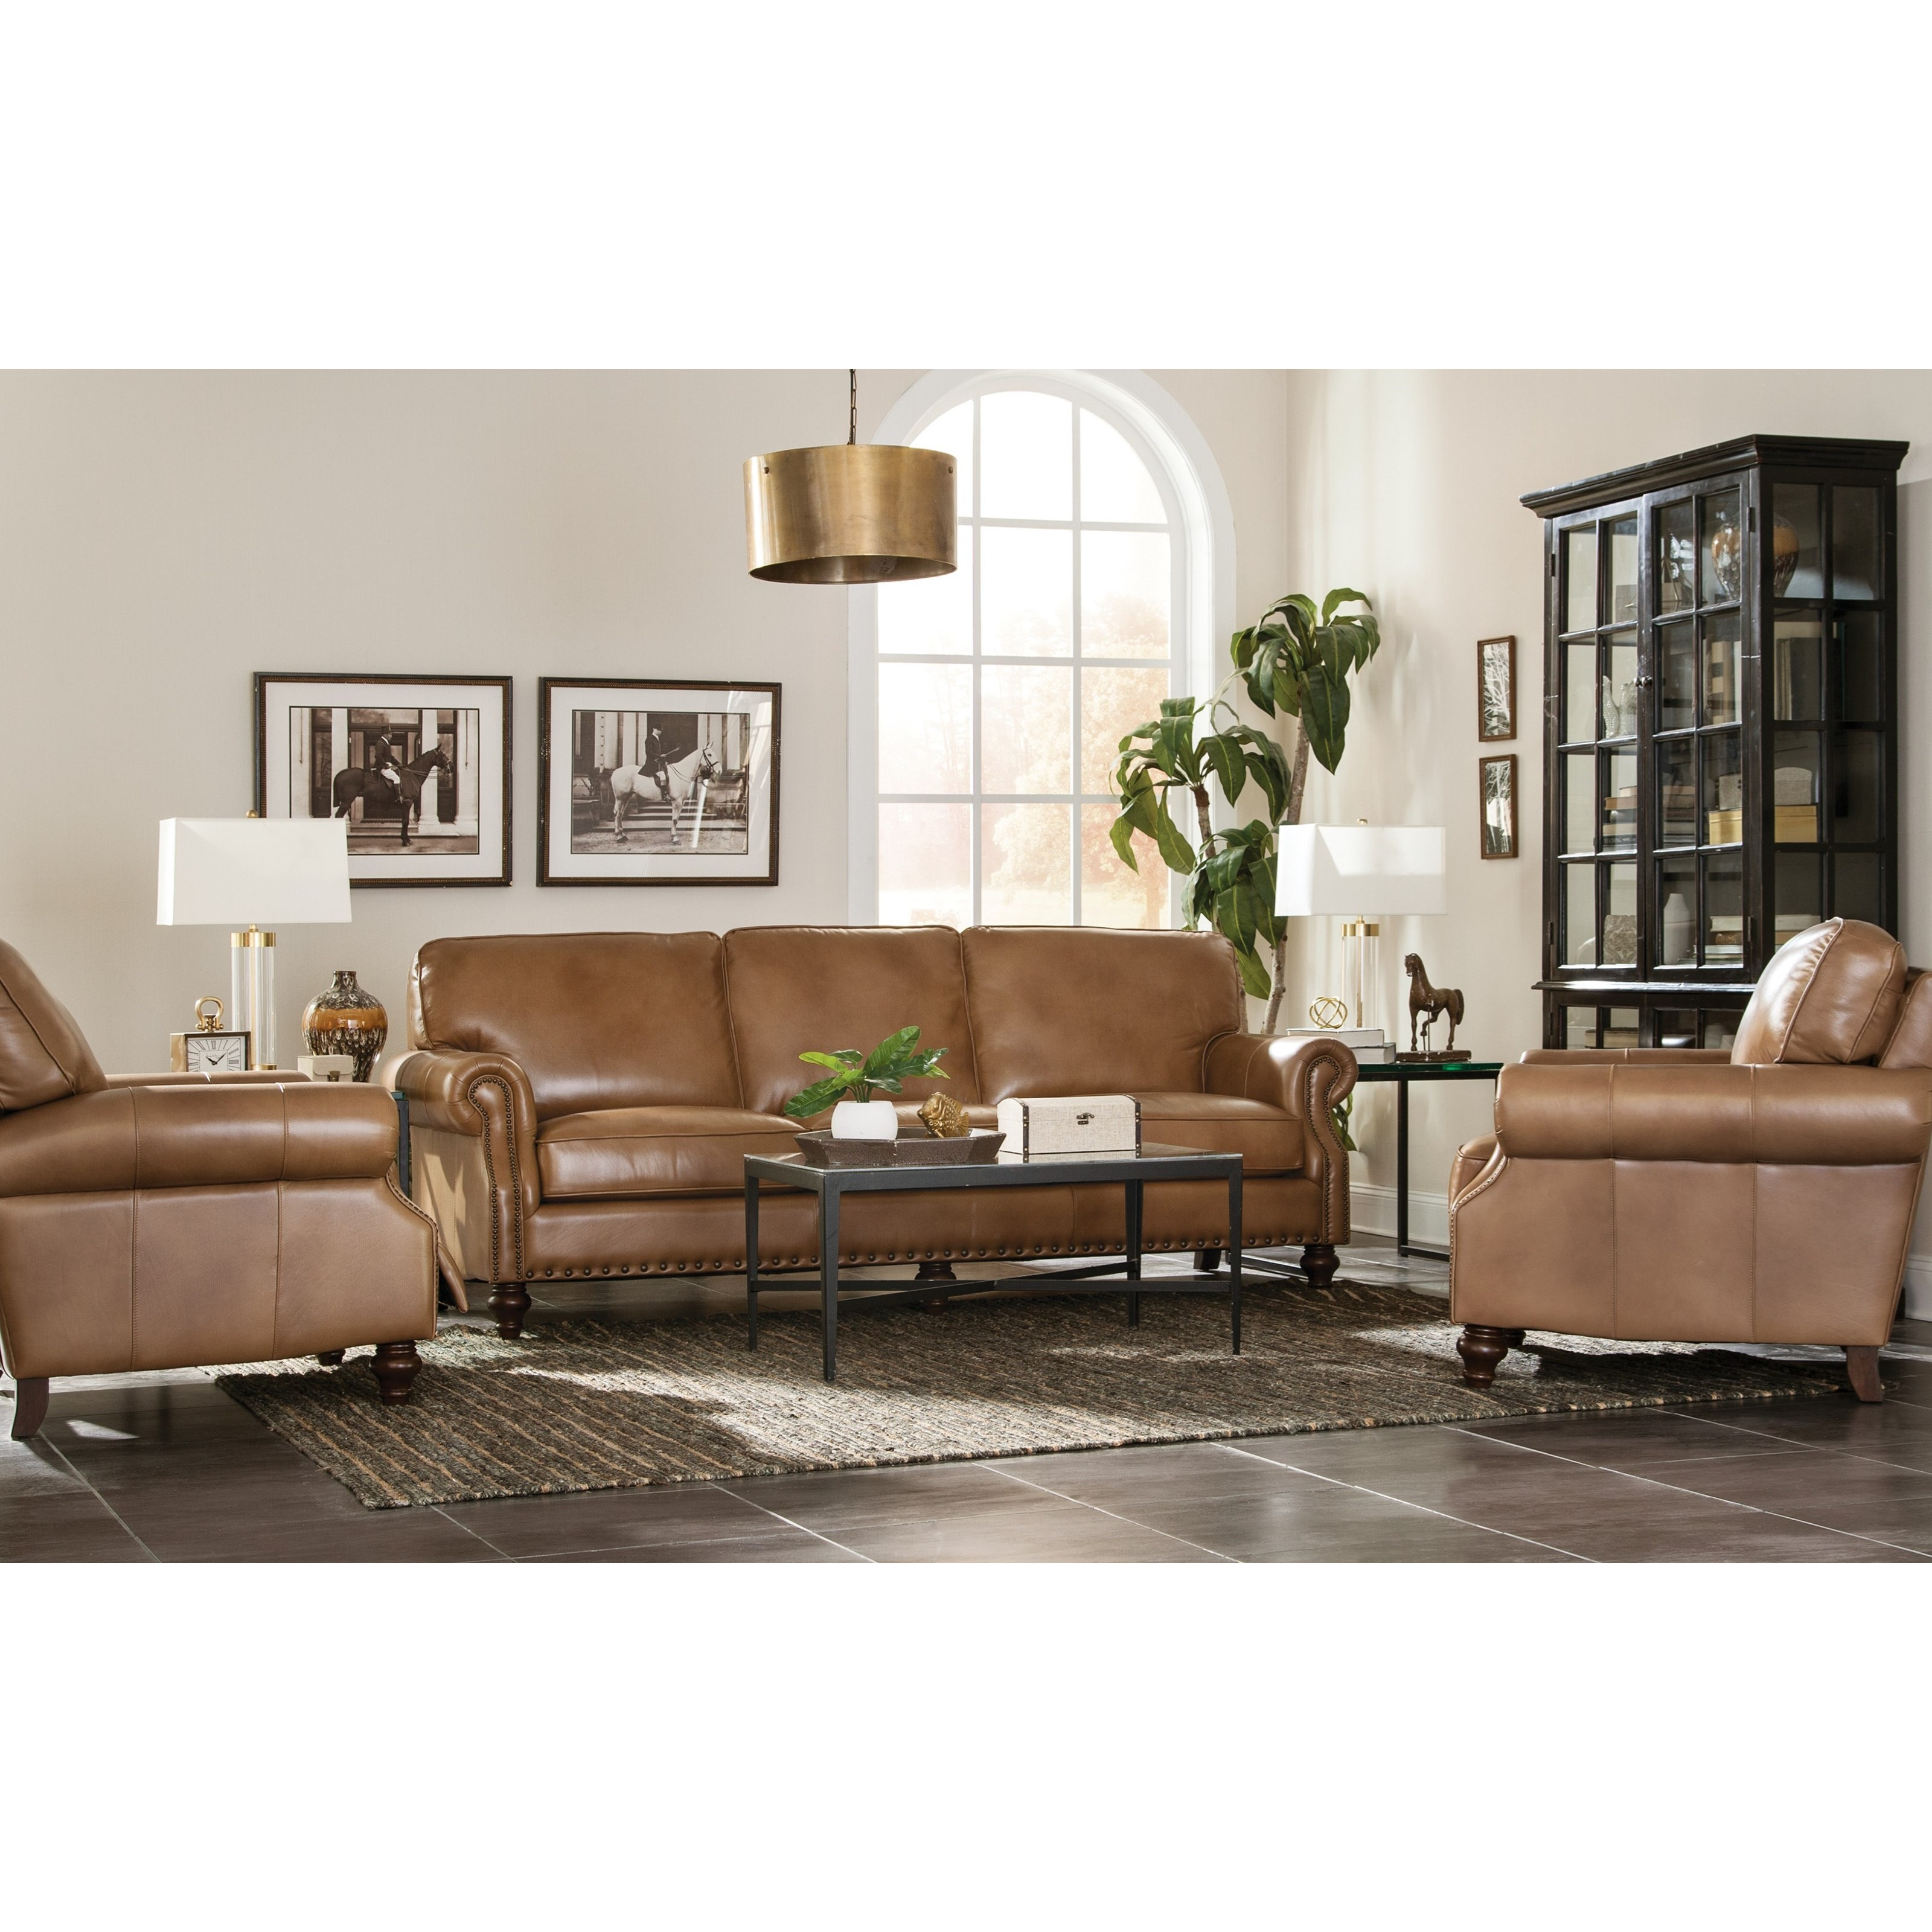 craftmaster sofa prices rattan corner stools and coffee table set l171450 traditonal leather